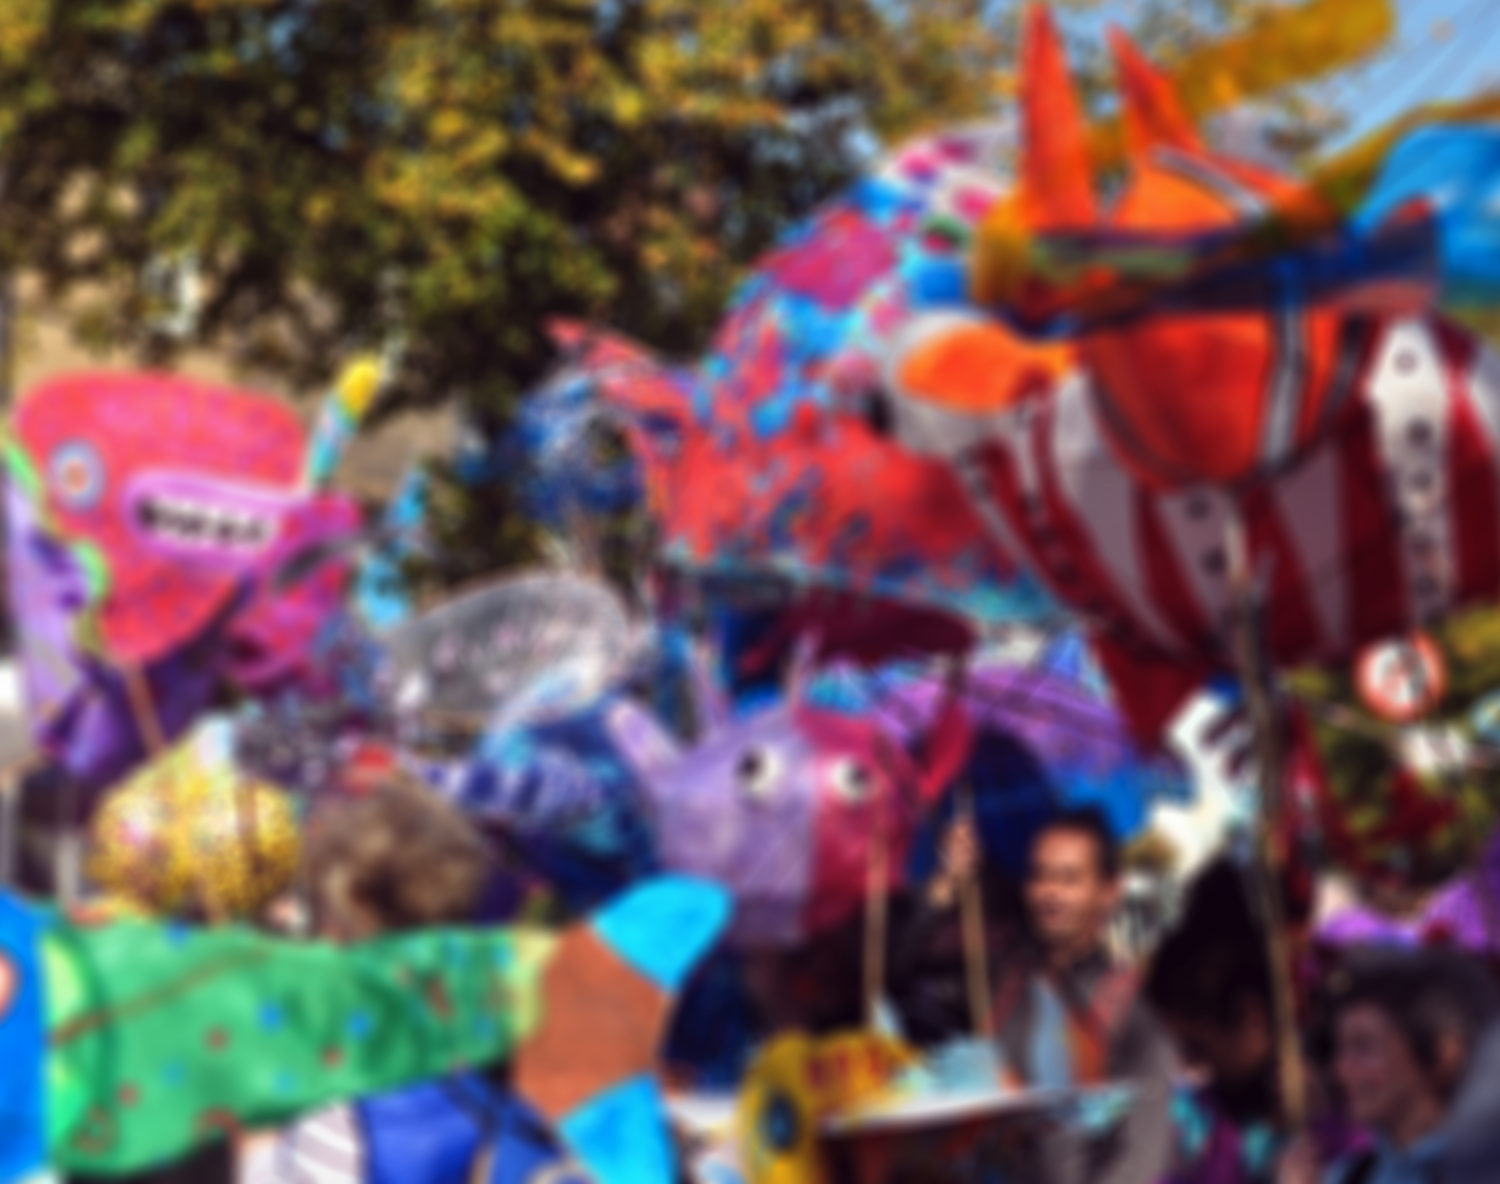 Handmade-Parade-background-3-blurred1.png